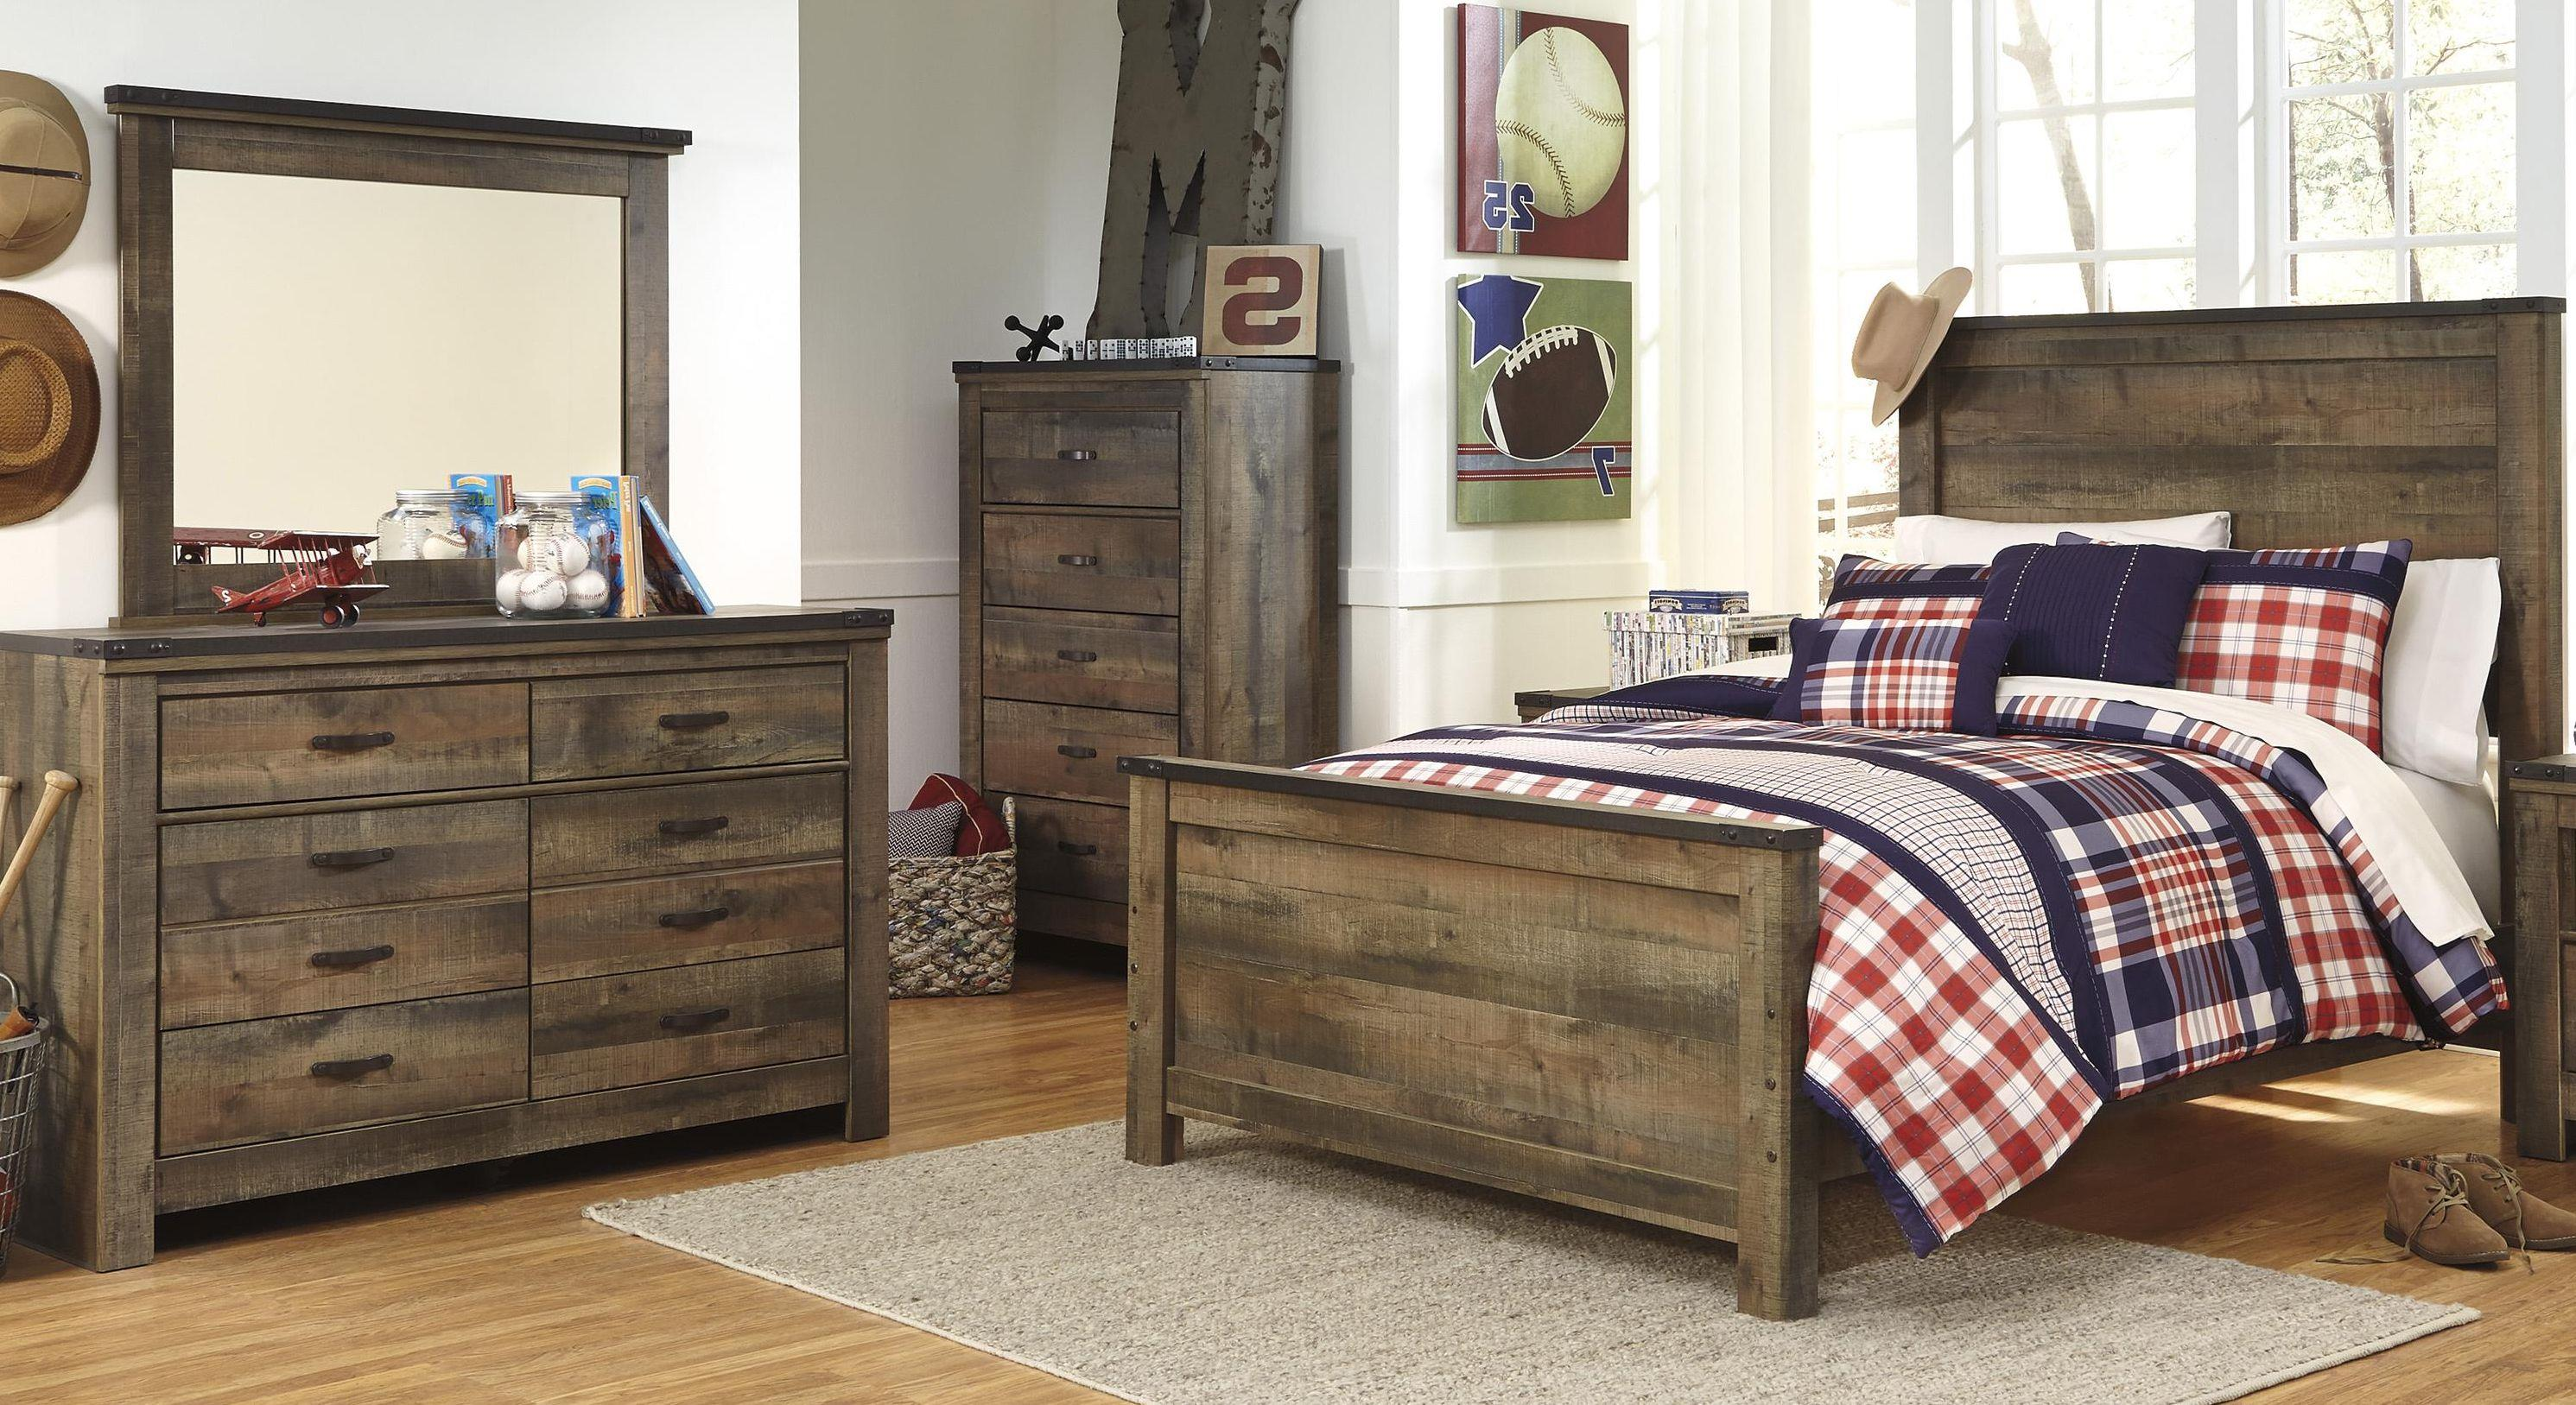 Signature design by ashley trinell full bed dresser and - Ashley furniture full bedroom sets ...